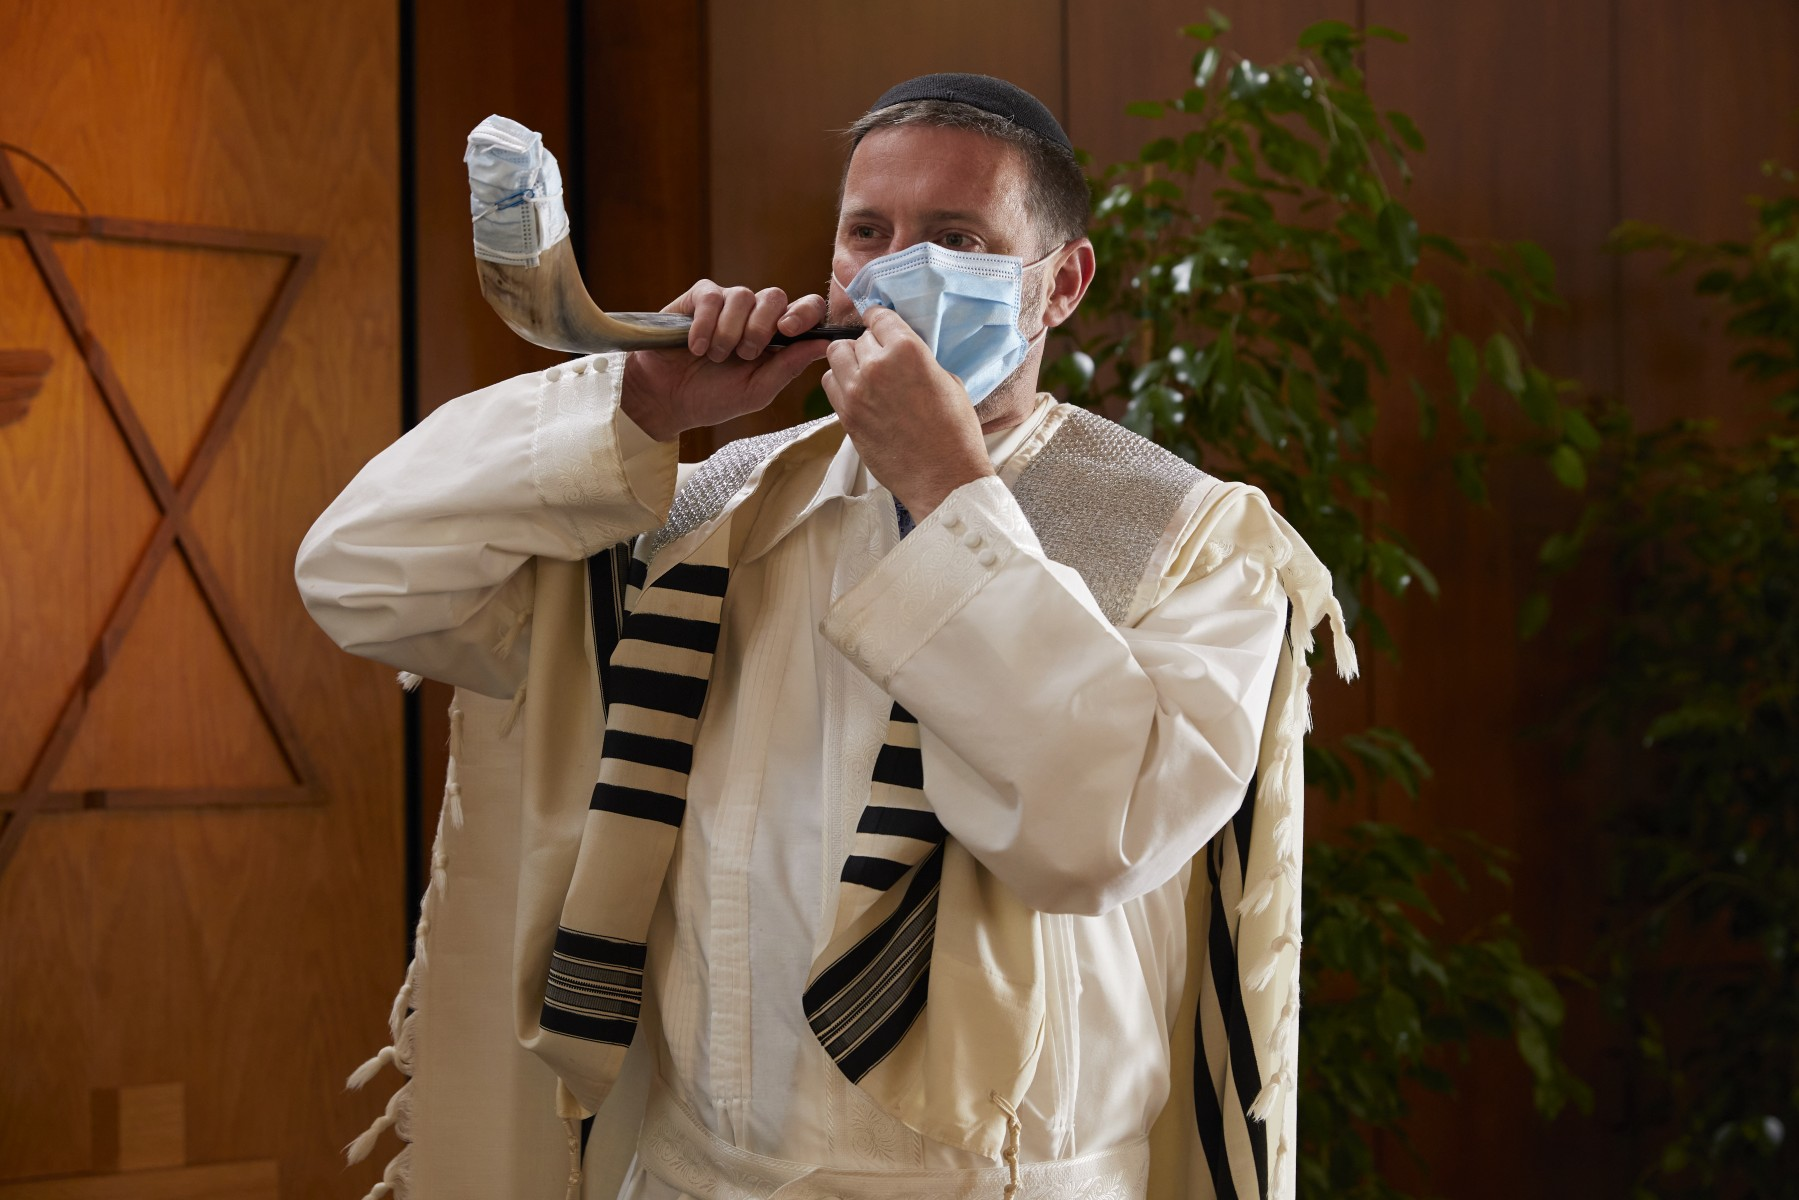 Rabbi Jason Weiner, PhD, demonstrates his masked shofar. Photo by Cedars-Sinai.